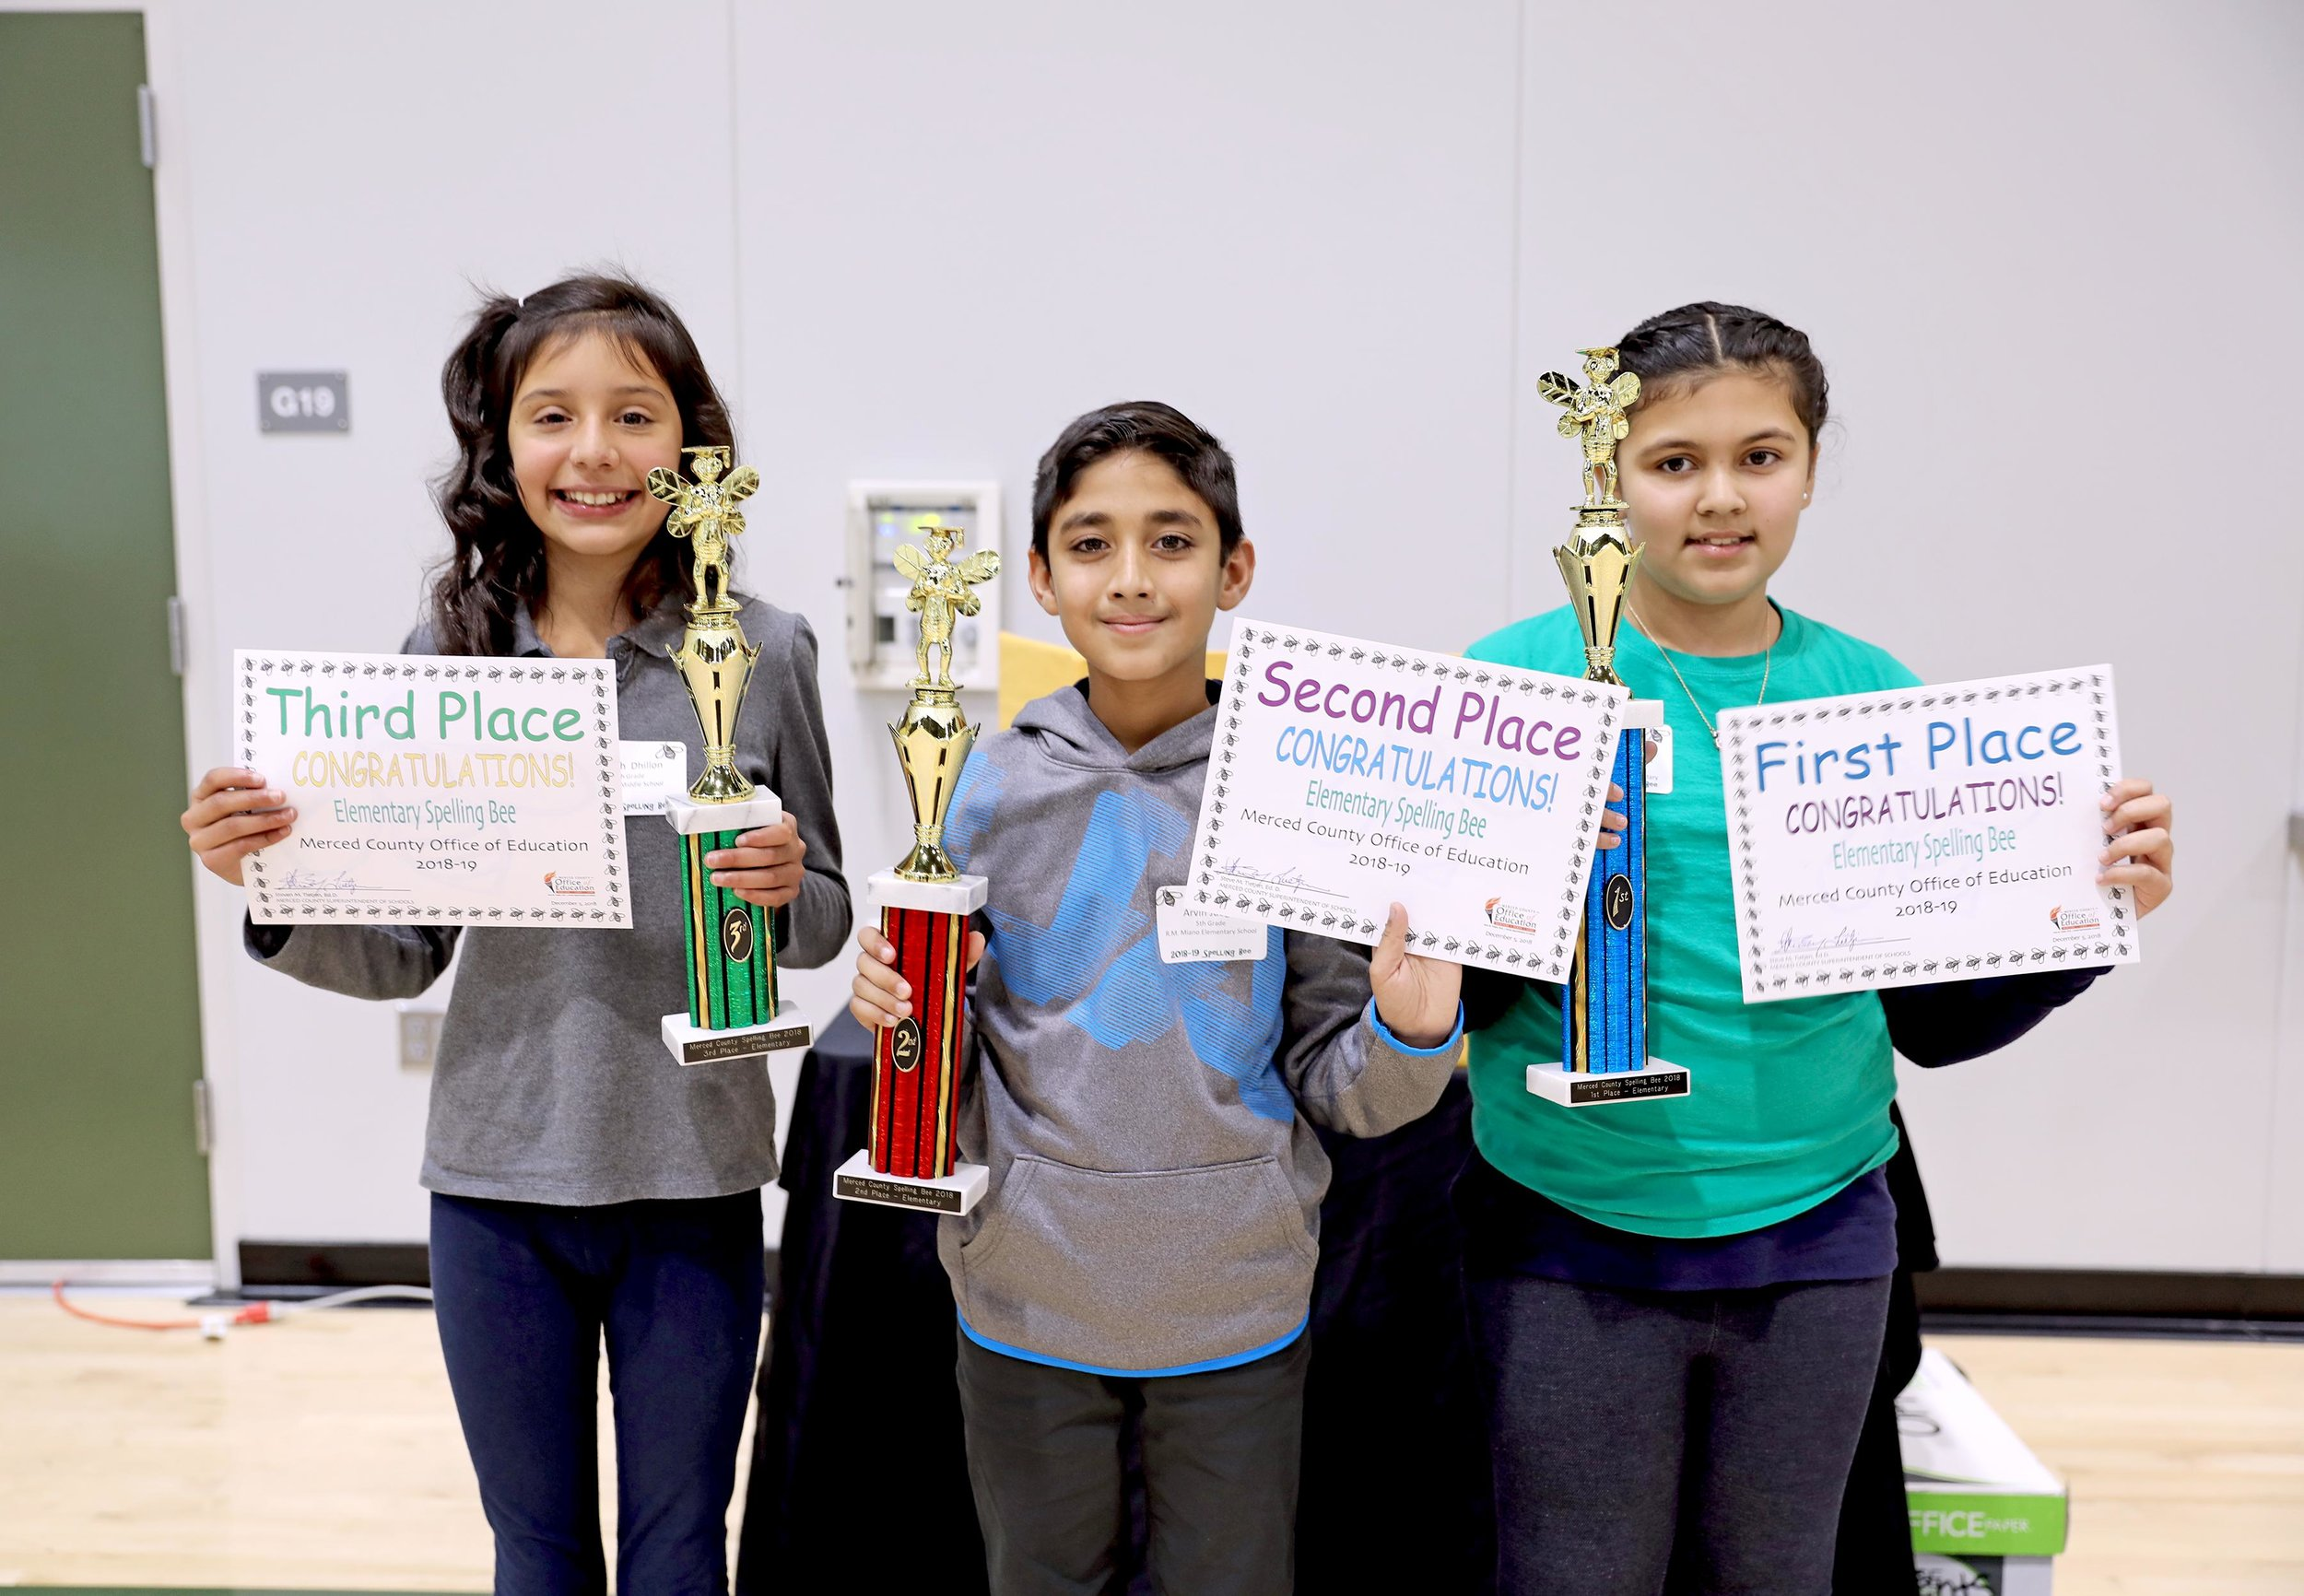 Merced County Elementary Spelling Bee winners Mariah Dhillon took third place, Arvin Judge took second place and Harneet Sandhu took the top spot. Photo: Nate Gnomes, Merced County Office of Education